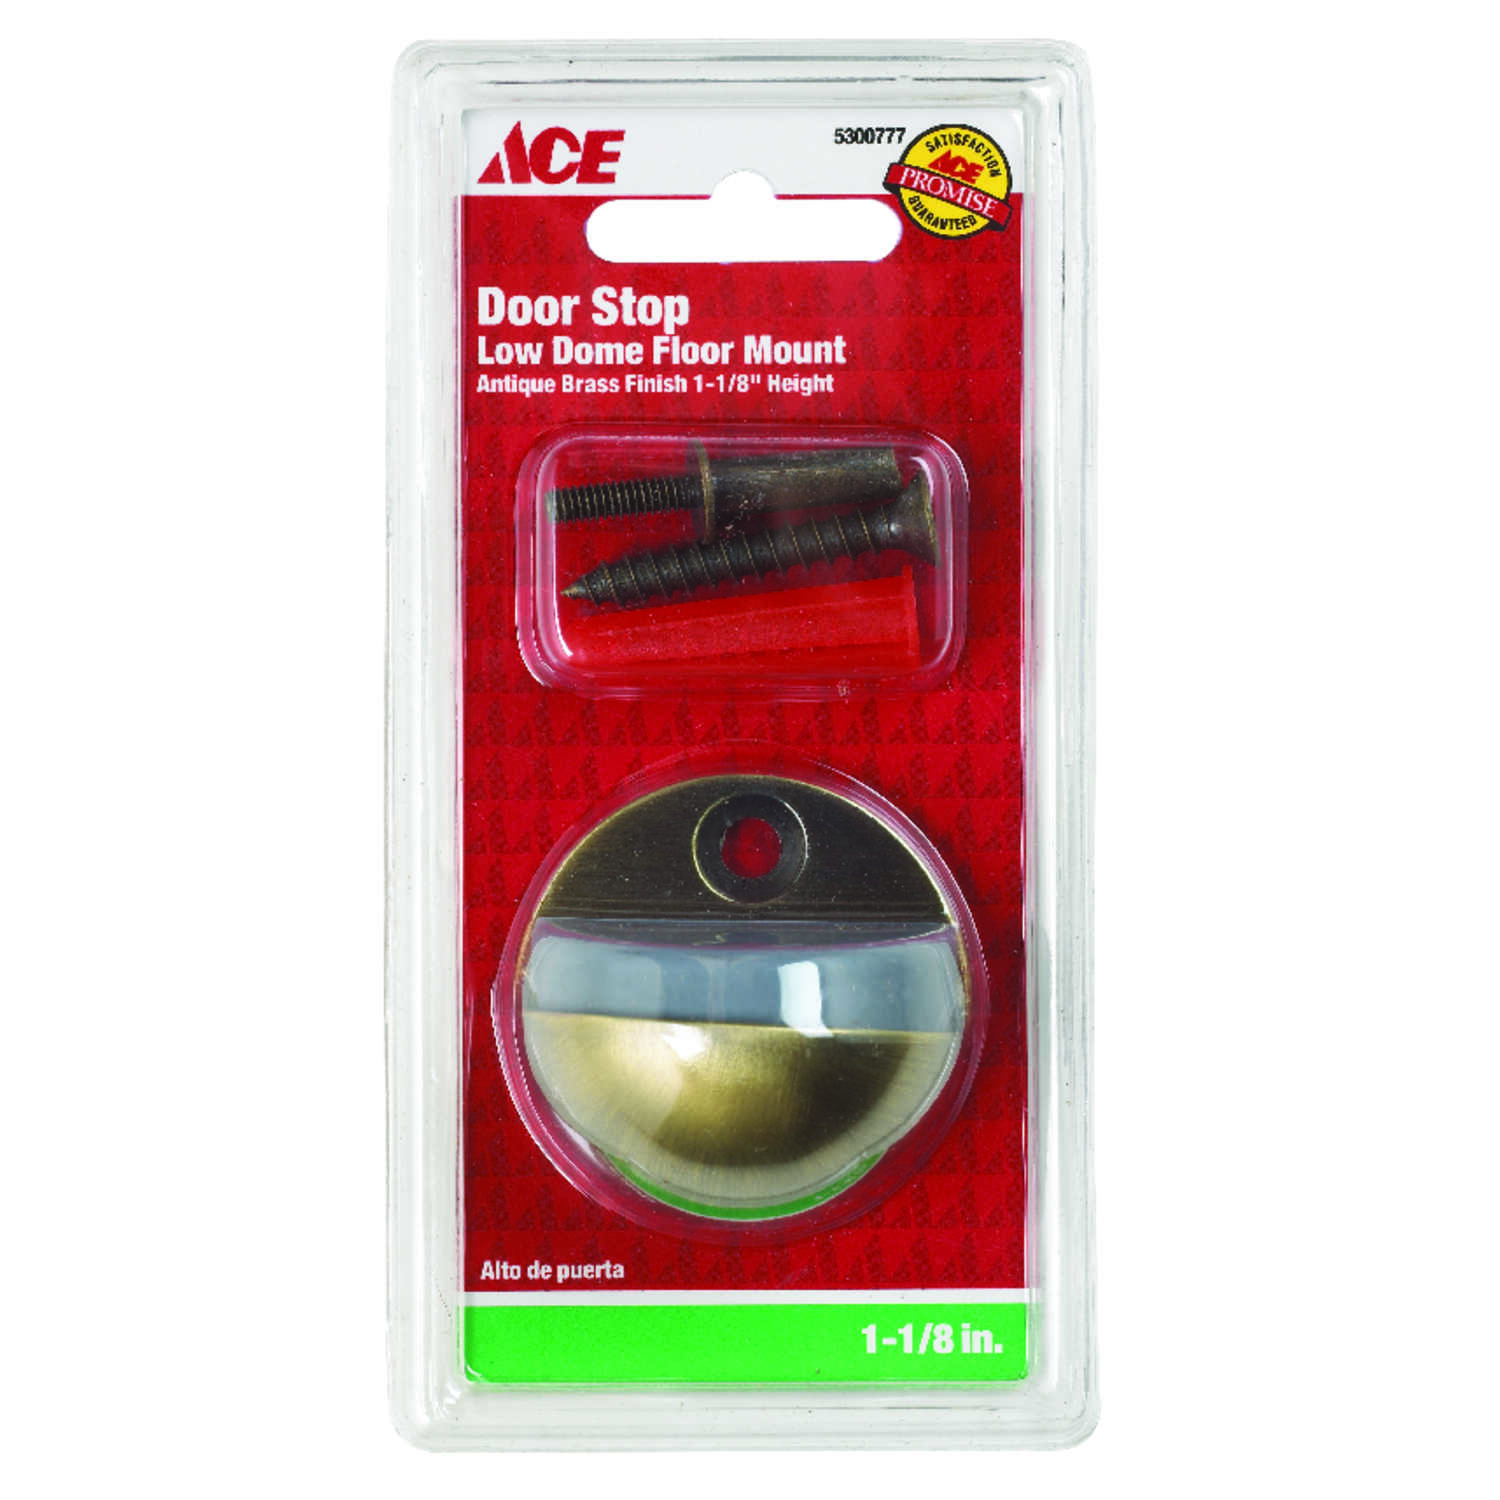 Ace  1-1/8 in. H x 1-3/4 in. W Bronze  Door Stop  Antique  Metal  Mounts to floor